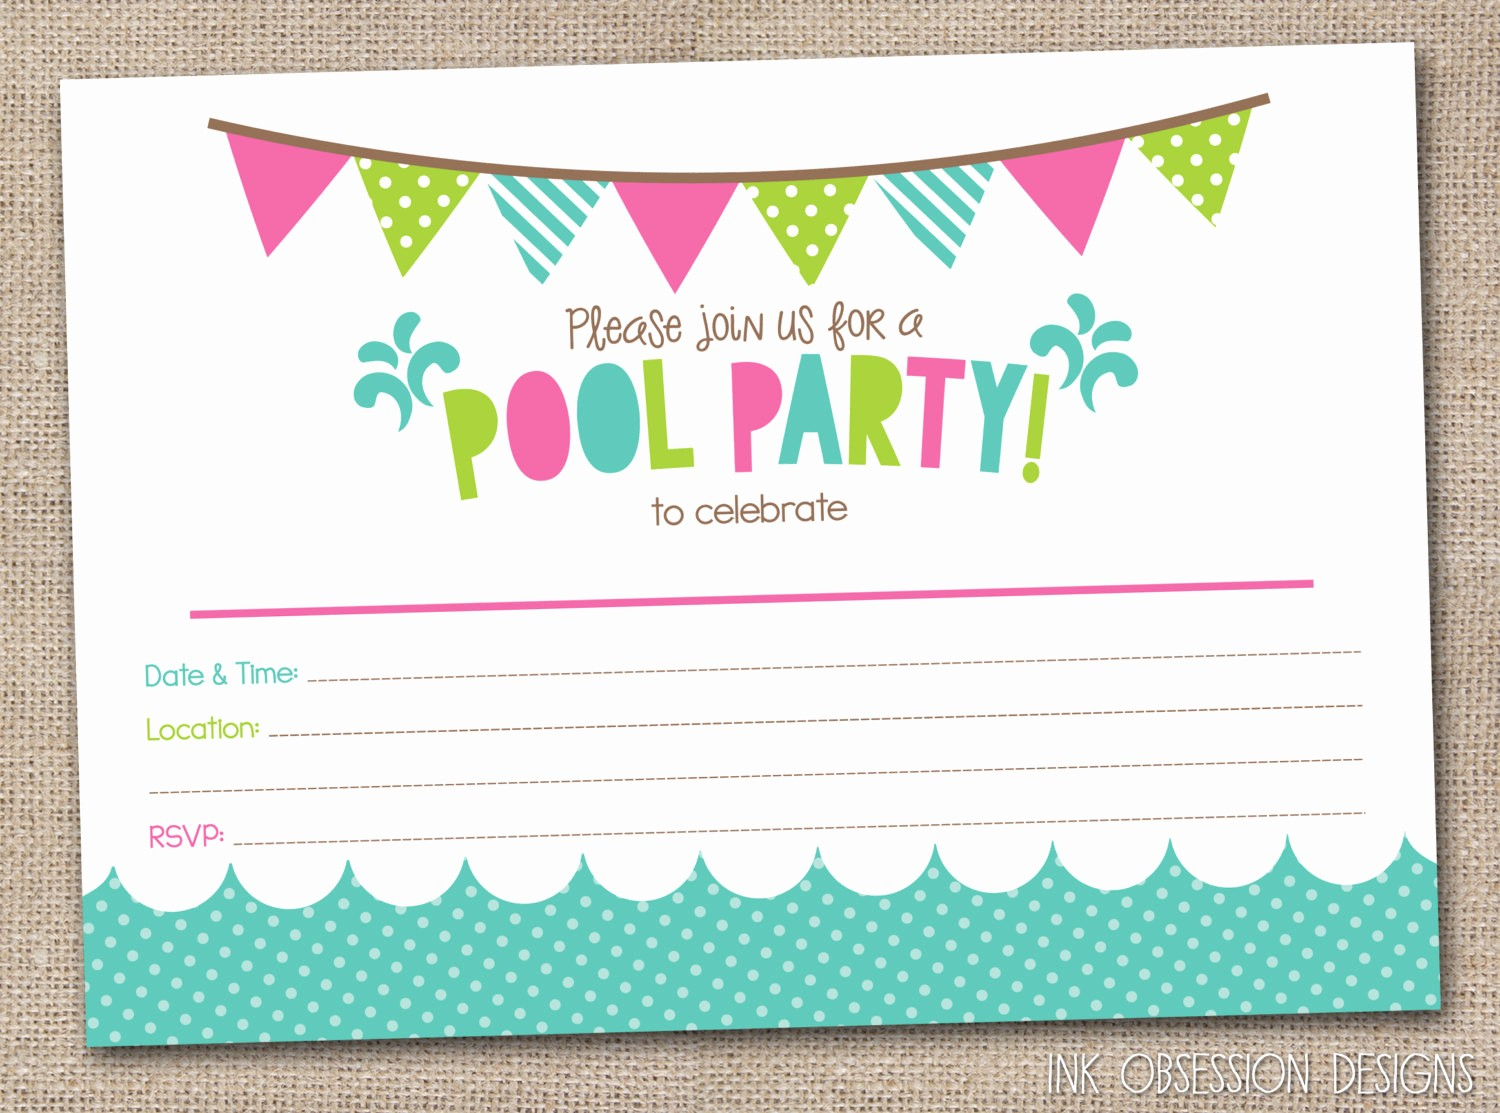 Year End Party Invitation Templates Elegant Year End Party Invitation Card